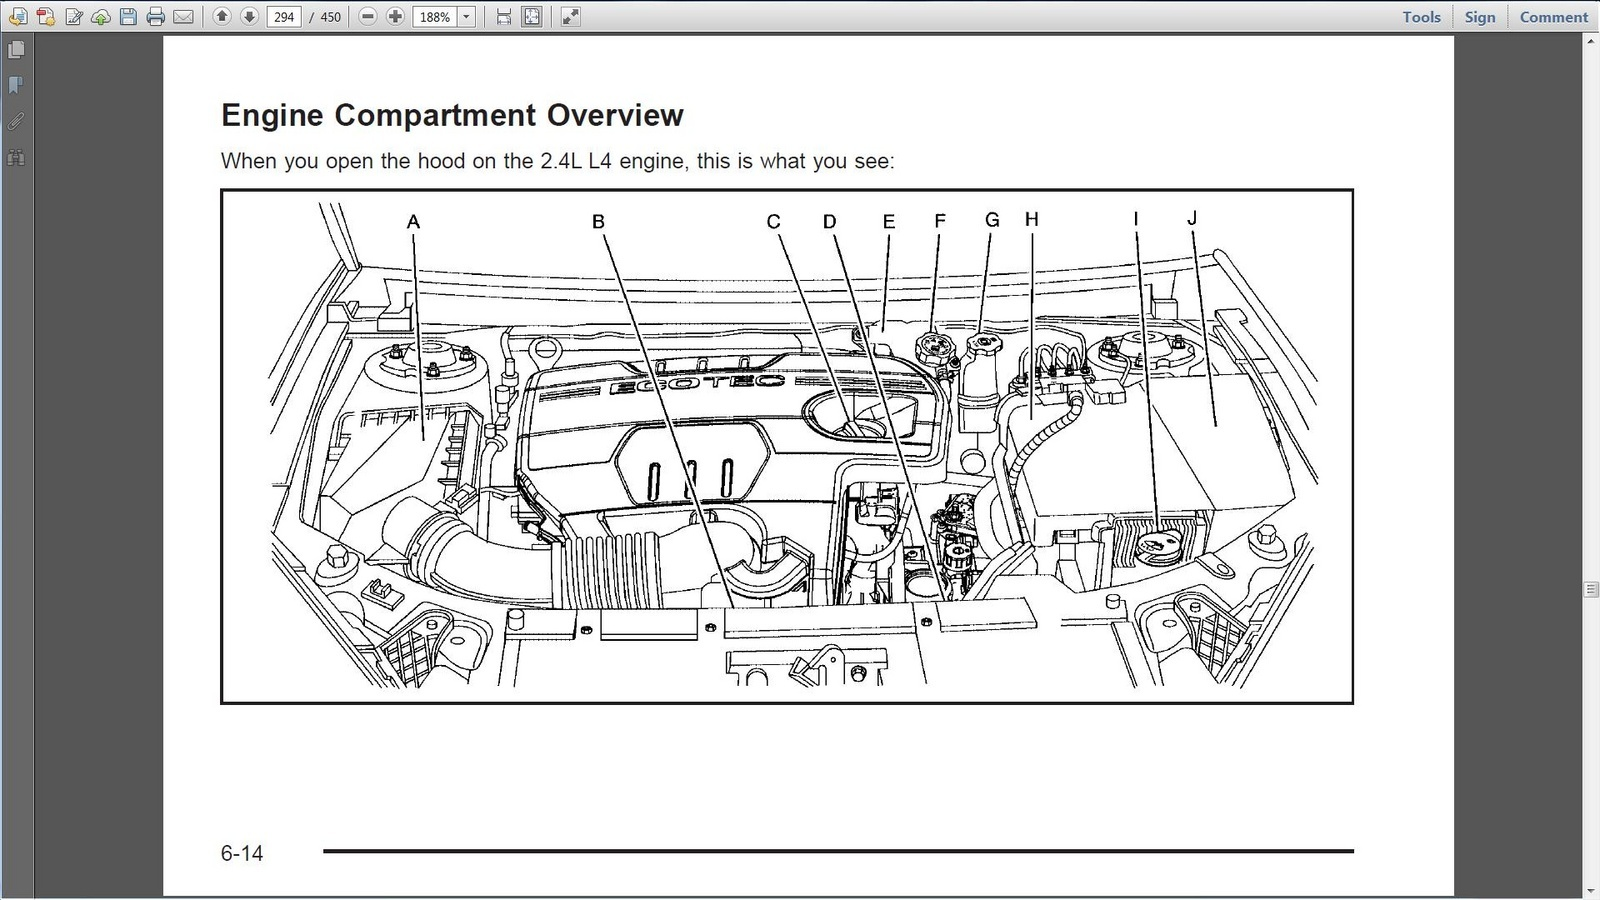 Chevrolet Engine Compartment Diagram - Wiring Diagram